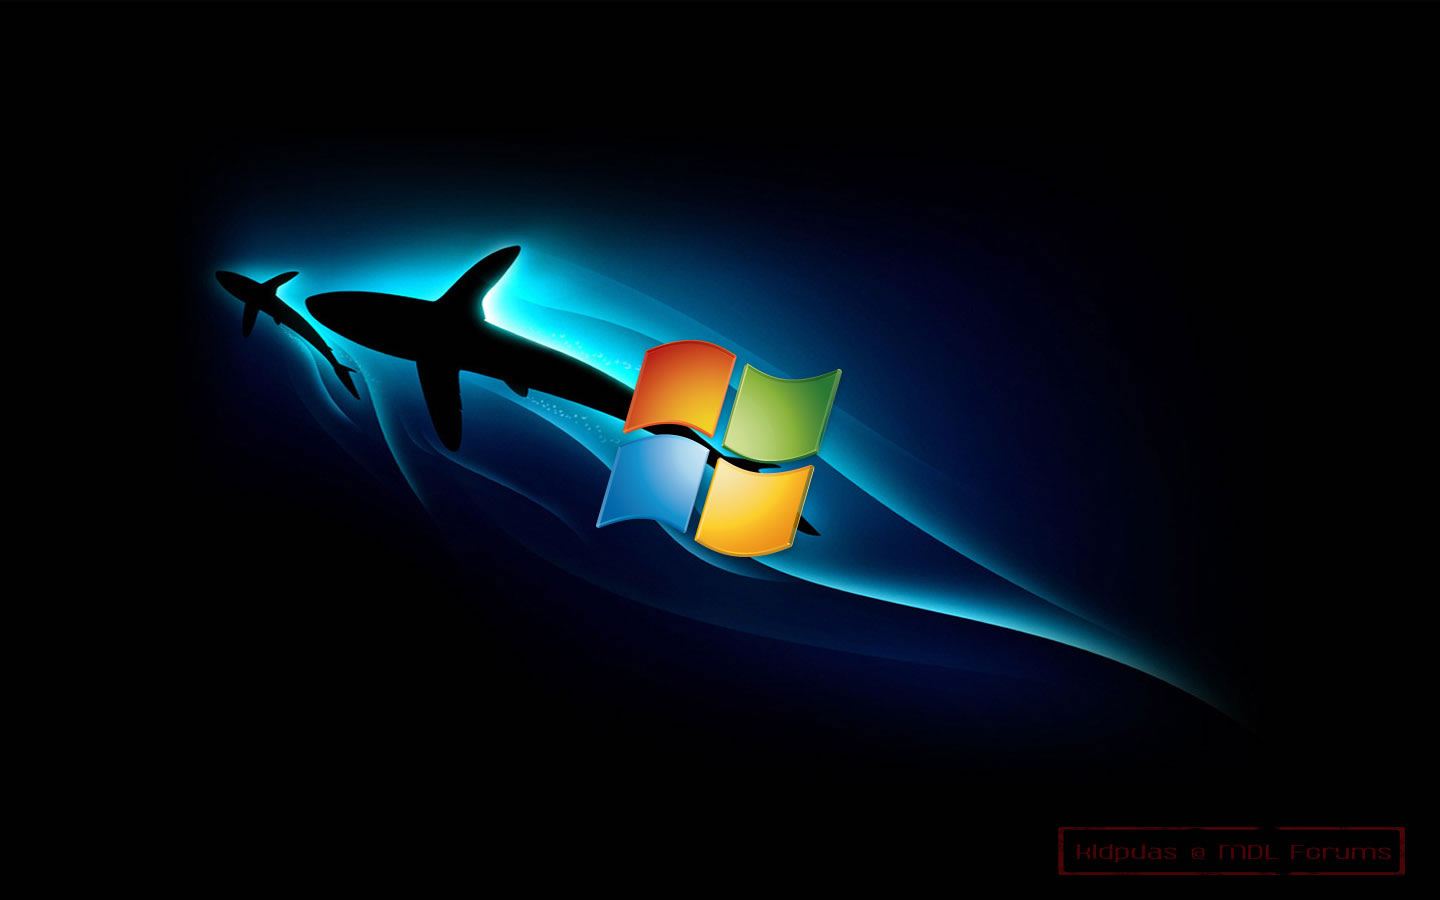 88 wonderful windows 8 wallpapers « windows.appstorm